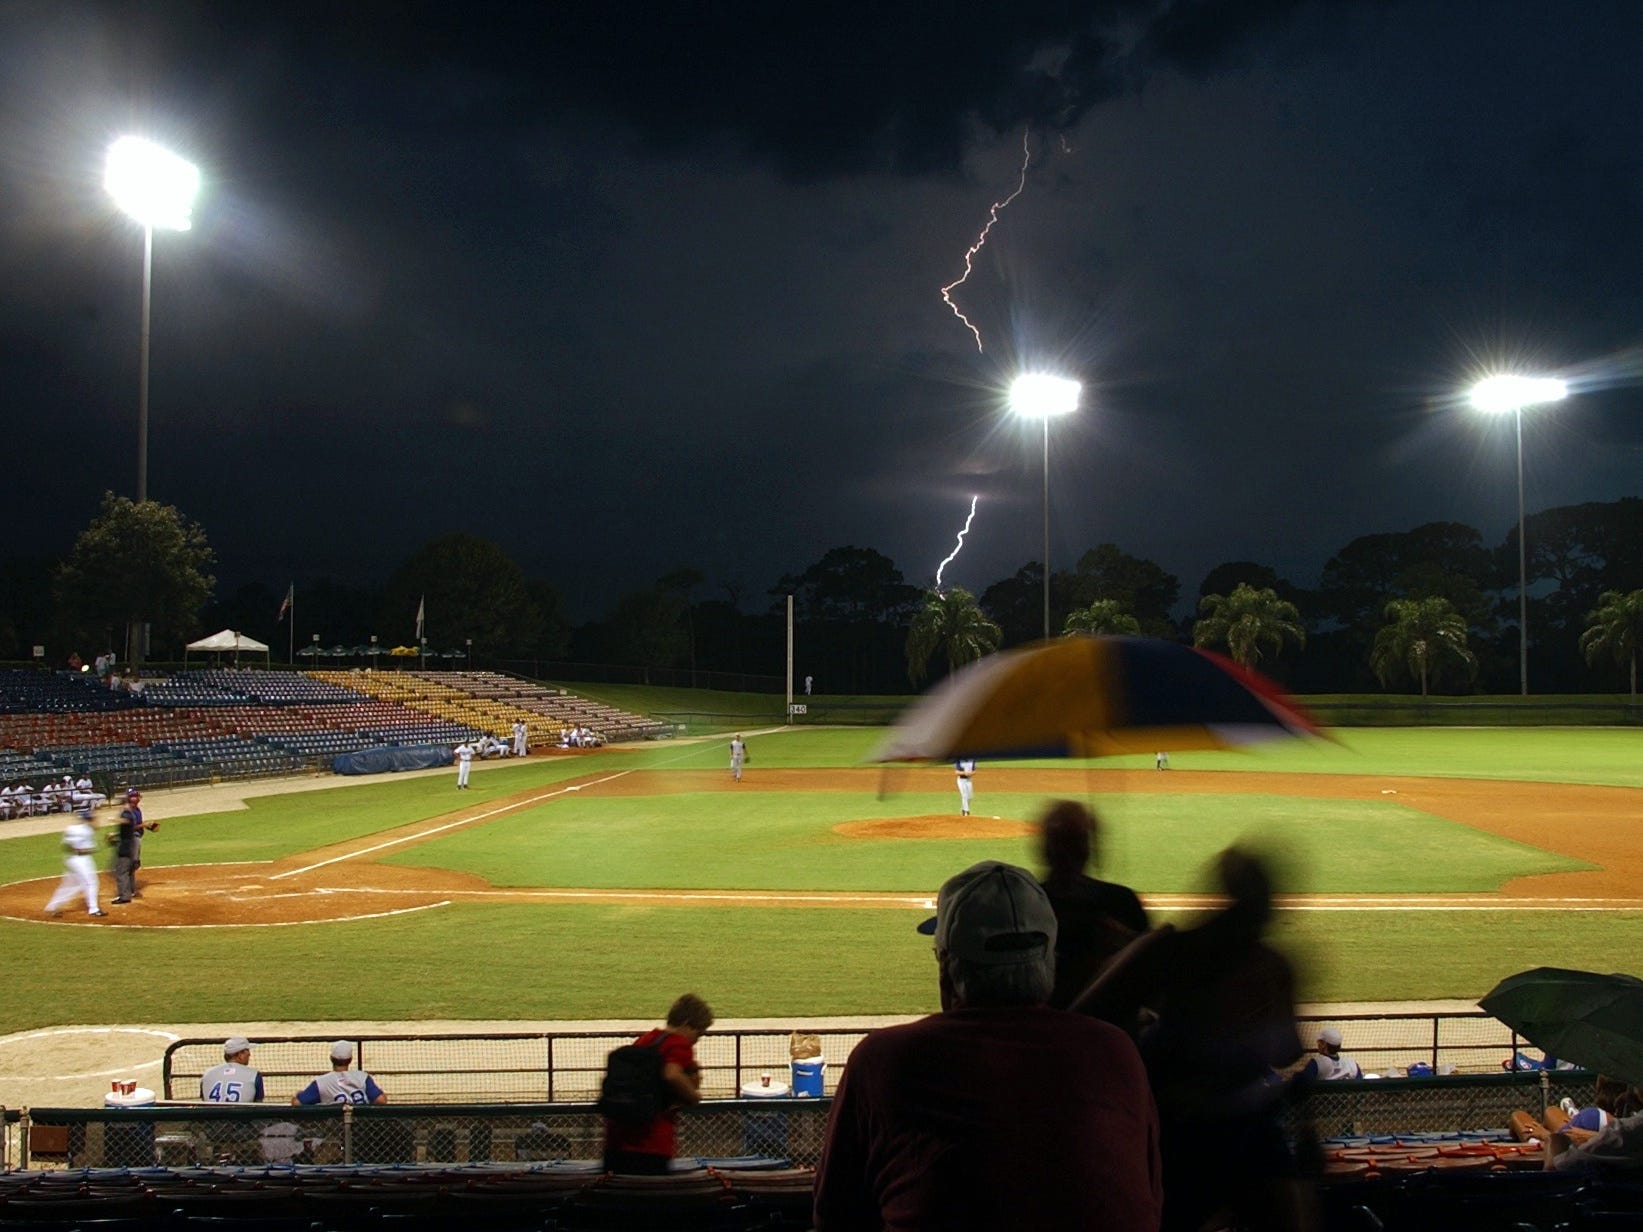 August 1, 2002 - Some brief bursts of lightning caused spectators to run for cover, but the Vero Beach Dodgers' home game against the Daytona Cubs kept going right on going through the small storm that popped up and caused a little bit of rain in Dodgertown. The Vero Beach Dodgers lost the game, 6-3.